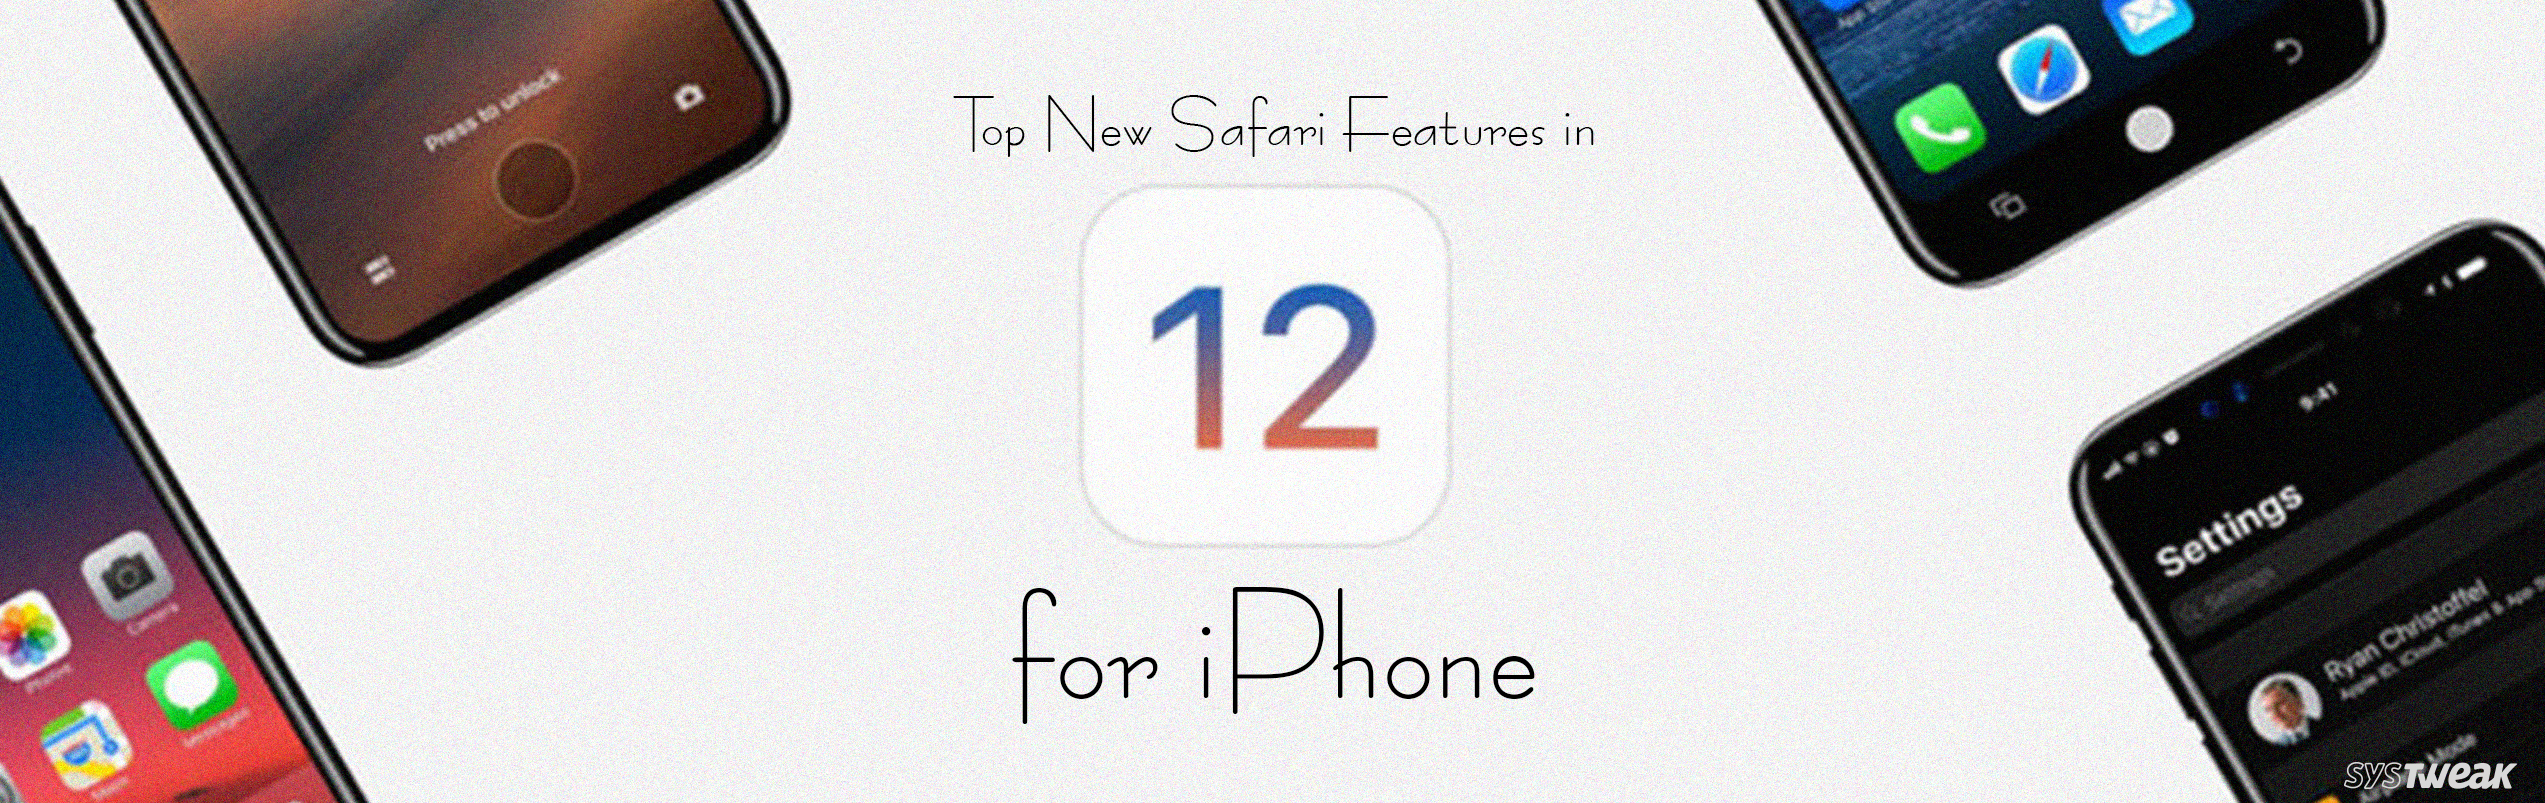 New Safari Features in iOS 12 for iPhone